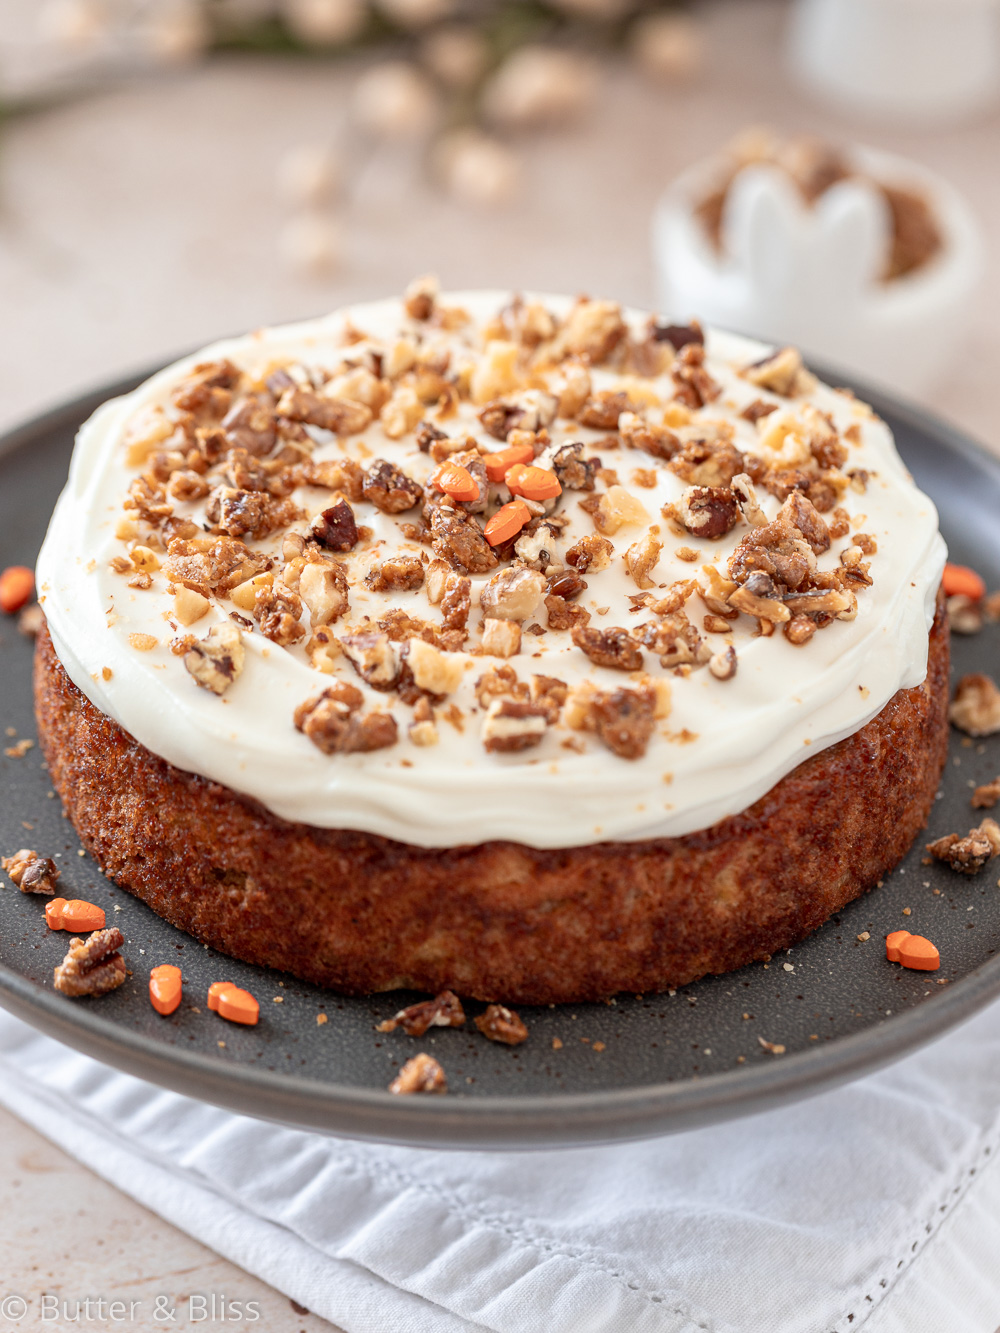 Frosted carrot cake on a serving platter